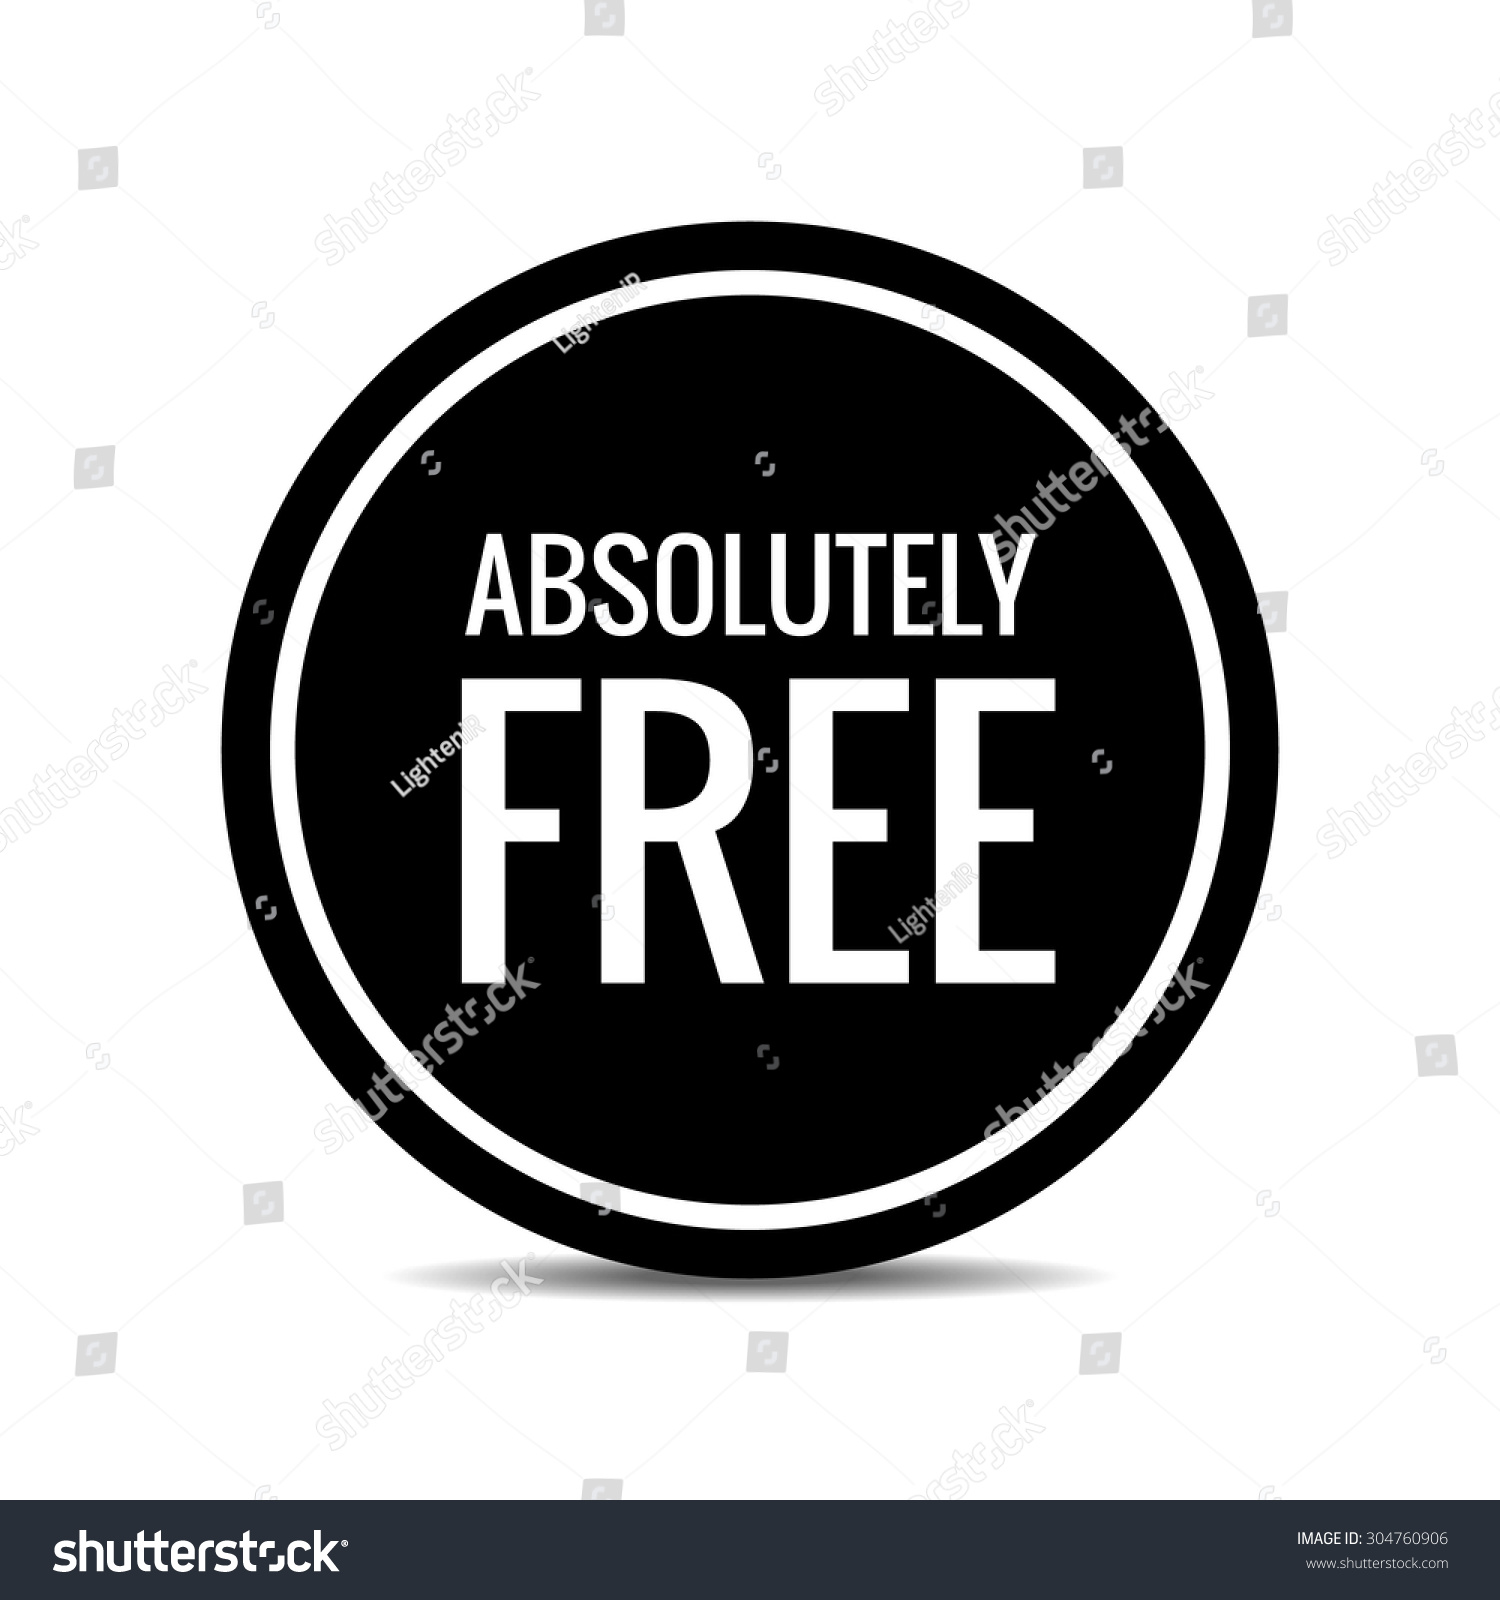 free free badge free stamp free stock vector 304760906 shutterstock